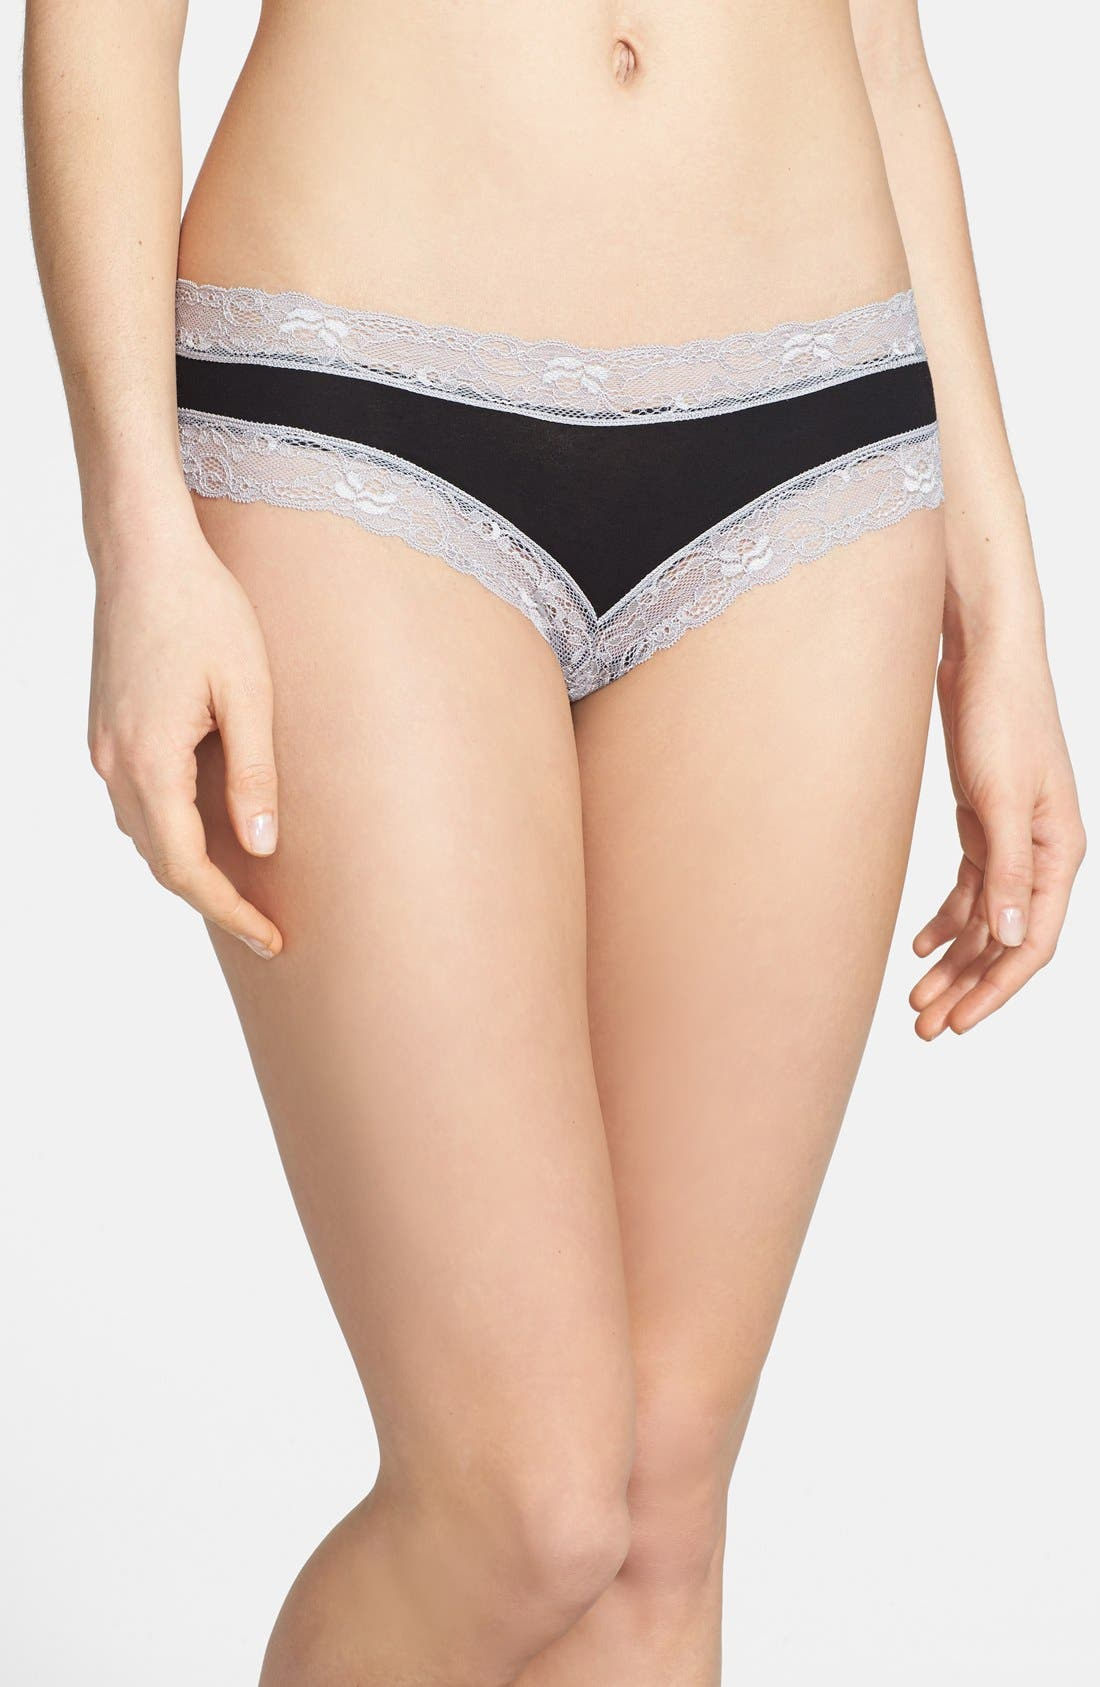 Alternate Image 1 Selected - Honeydew Intimates Lace Trim Cheeky Hipster Briefs